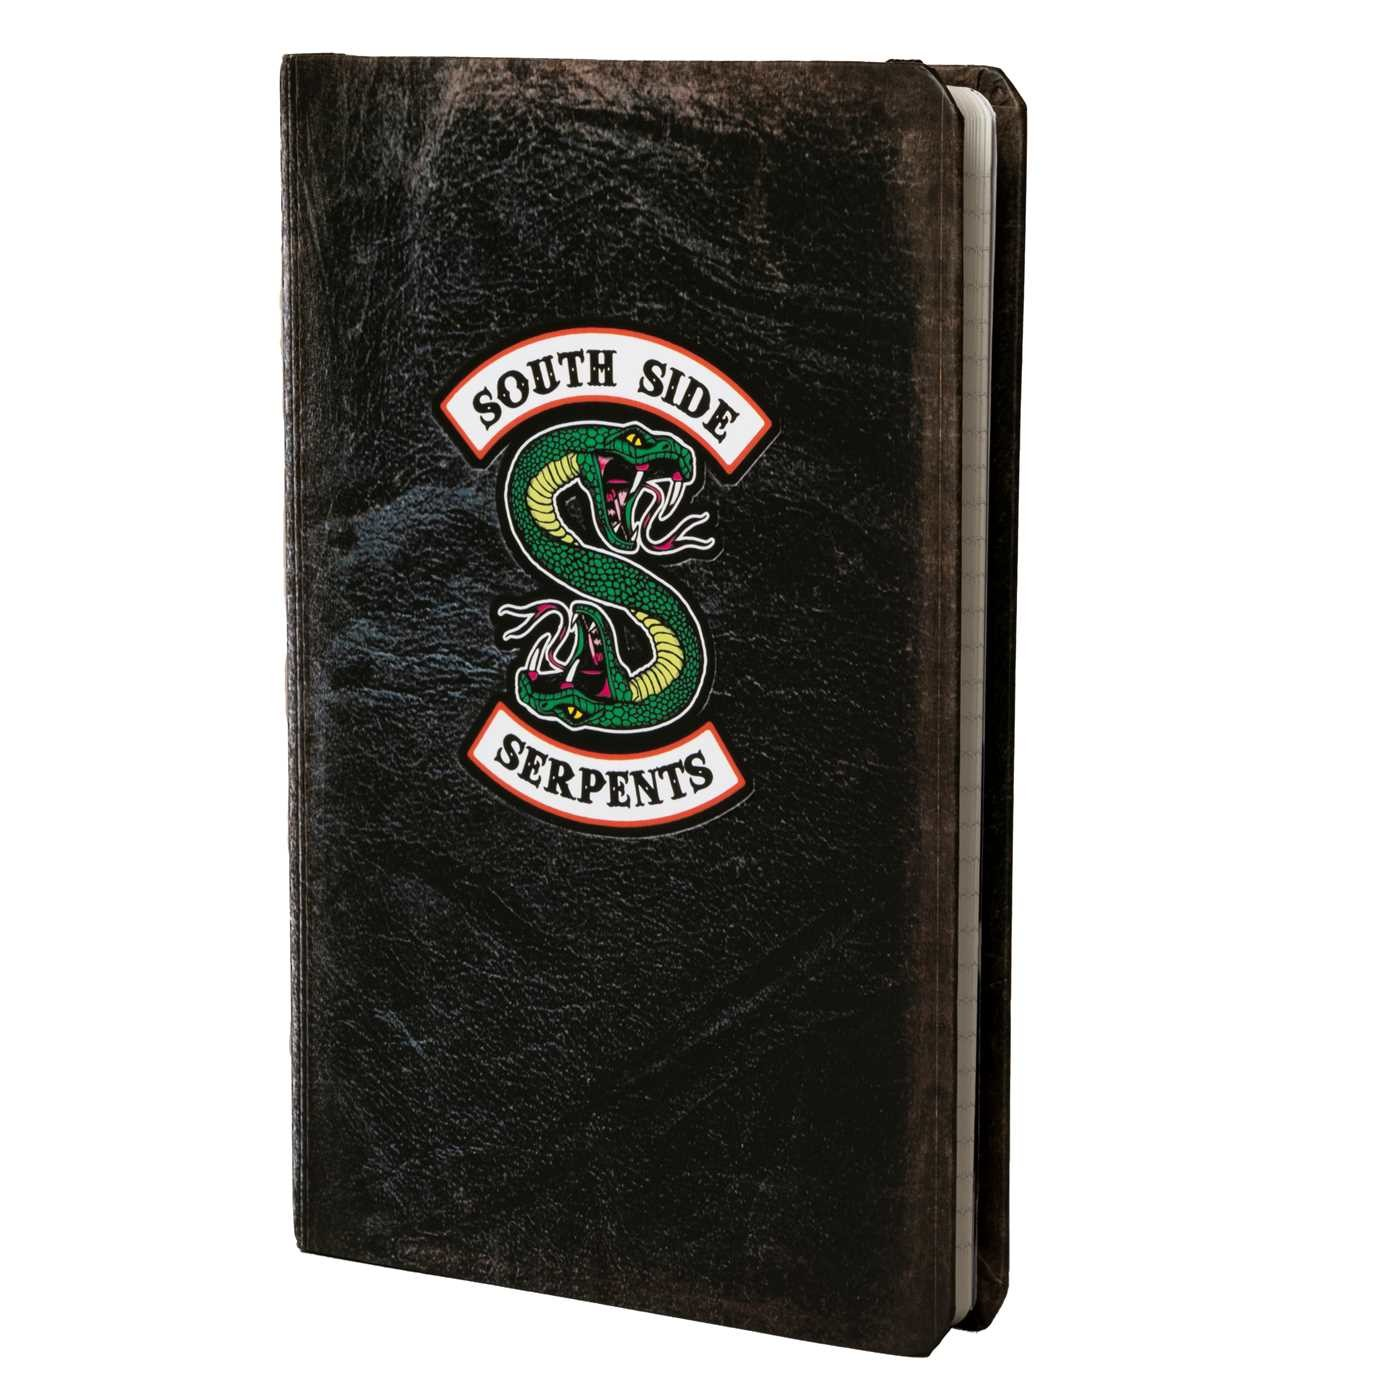 Riverdale hardcover ruled journal 9781683836049.in03